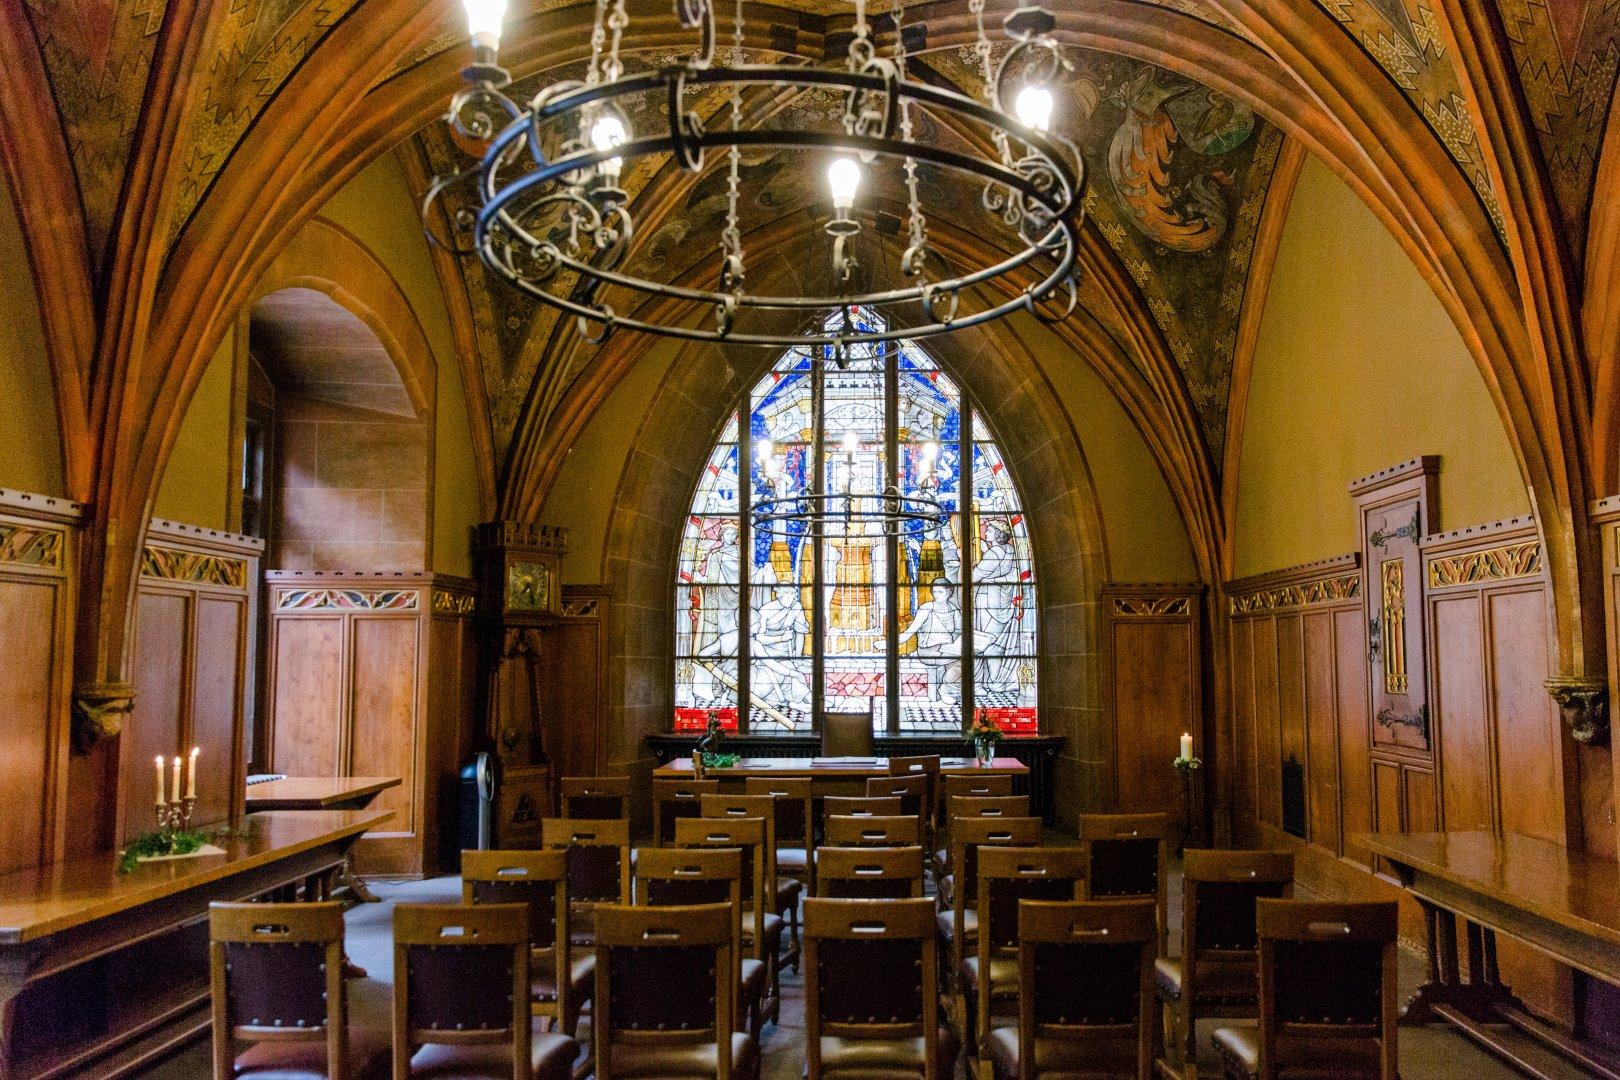 Building Stained glass Architecture Chapel Arch Ceiling Interior design Place of worship Glass Vault Window Aisle Church Room Cathedral Medieval architecture Furniture Symmetry Arcade Hall Basilica City Synagogue